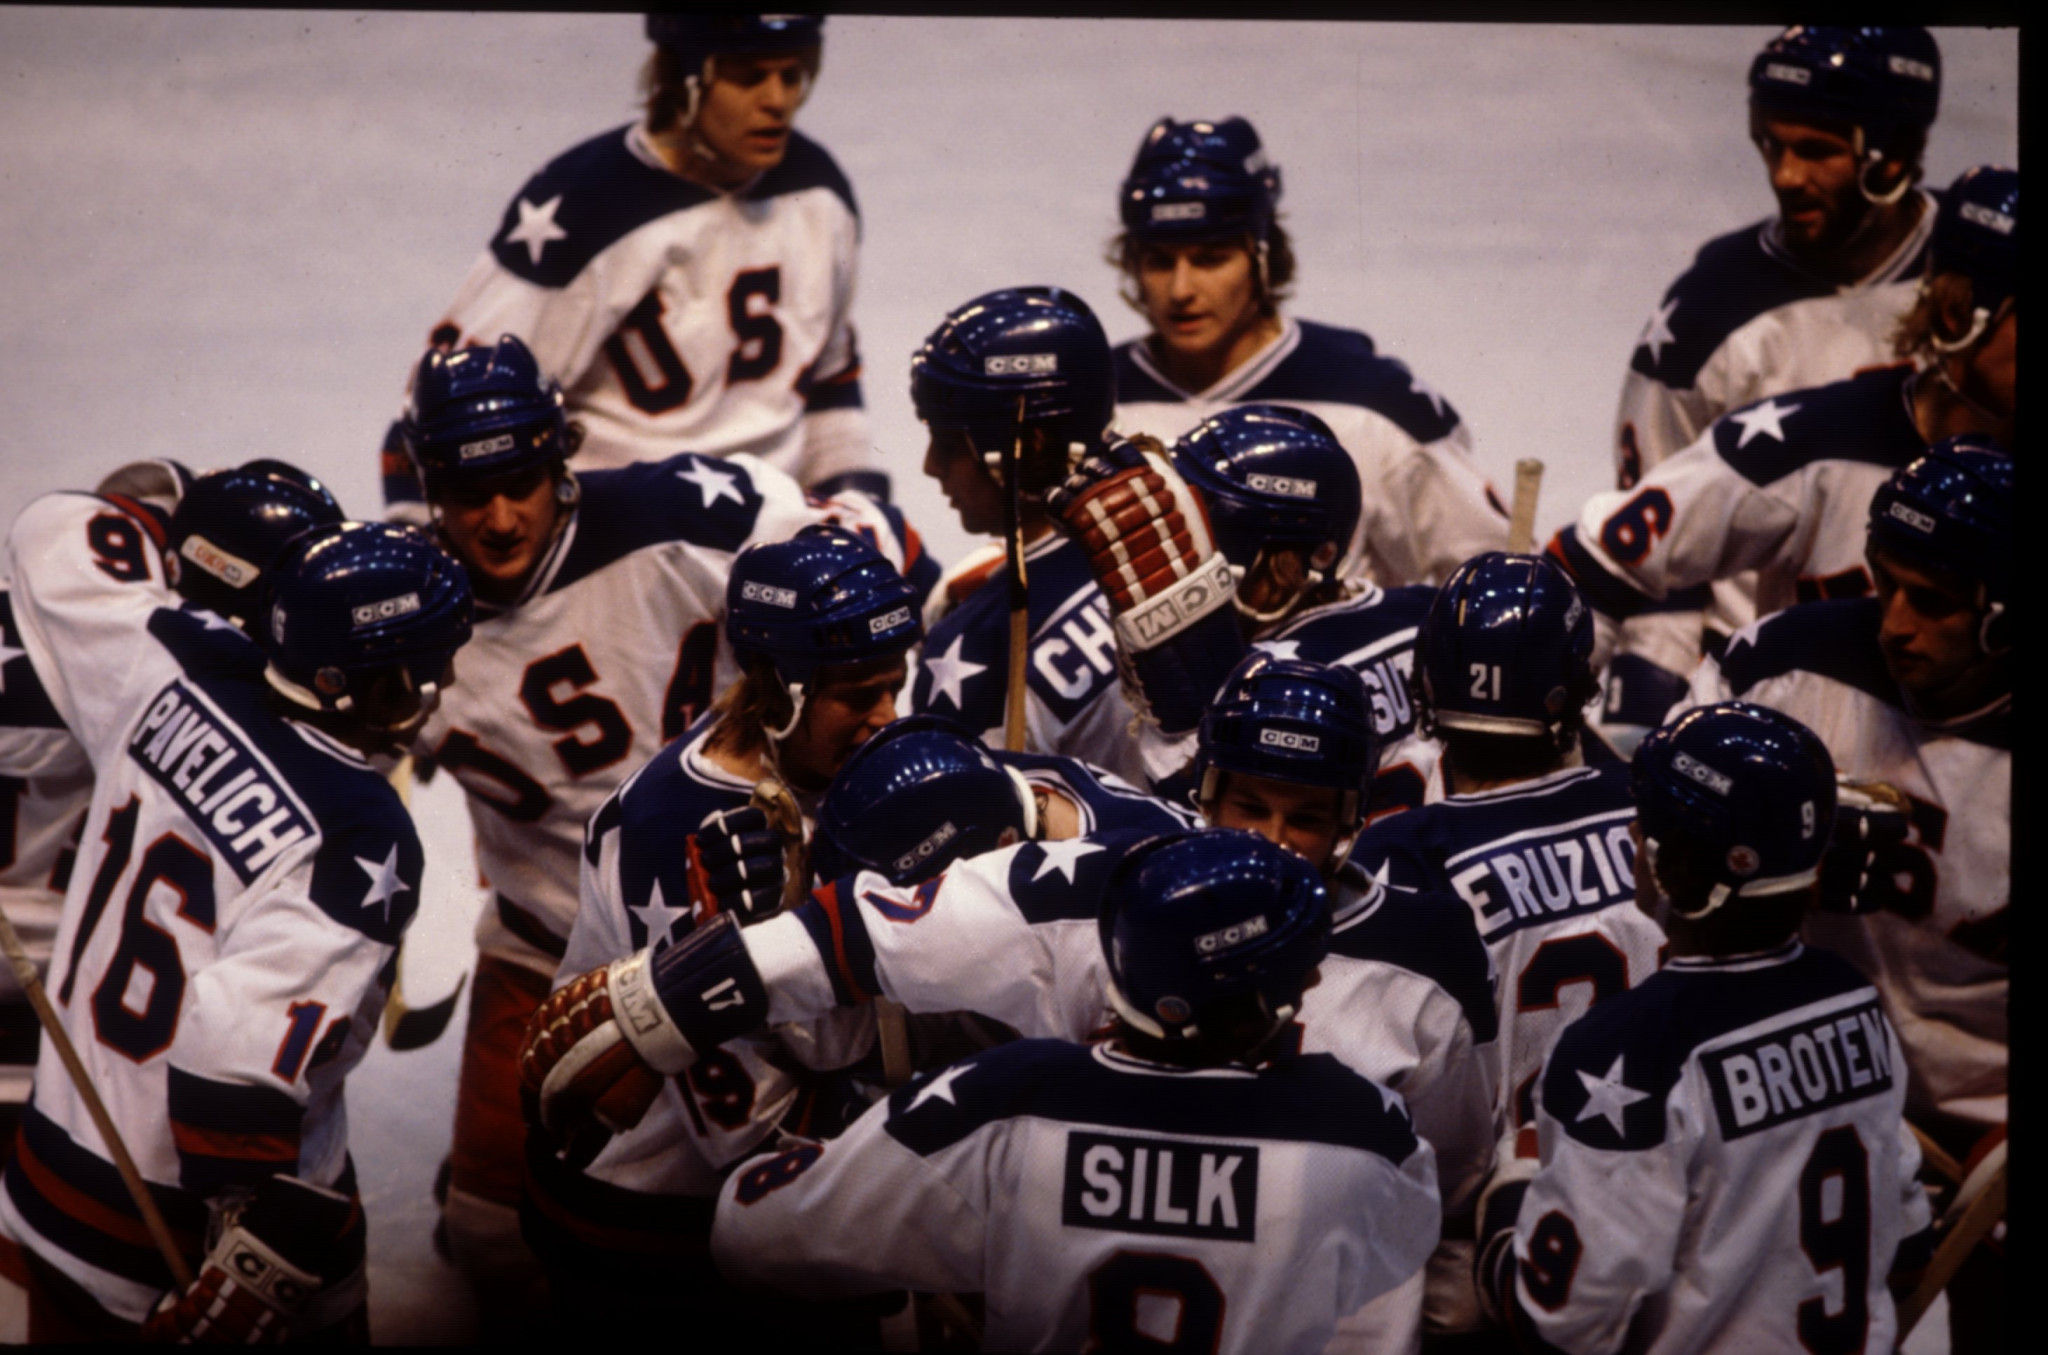 Miracle on Ice star Pavelich dies aged 63